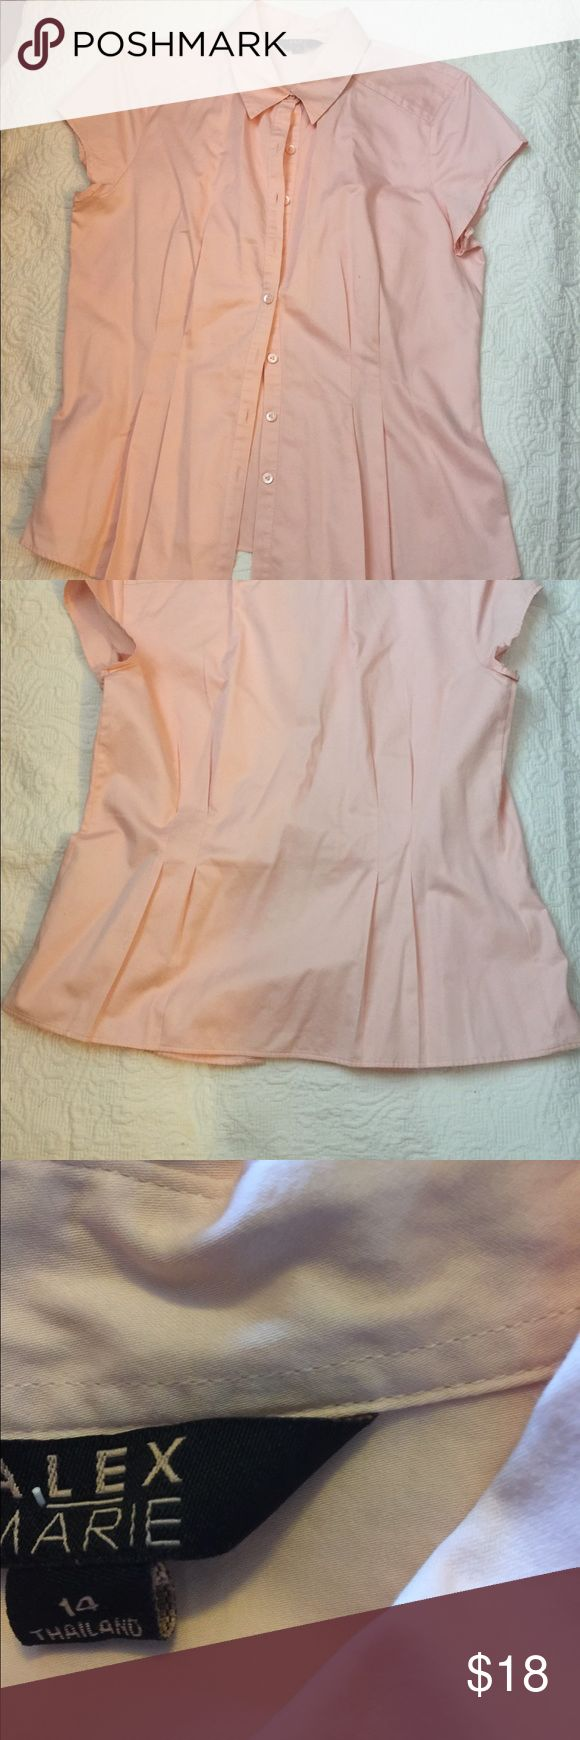 Alex Marie button up fitted blush pink shirt All cotton, semi fitted with darts at waistline. Other items in pics not for sale Alex Marie Tops Blouses